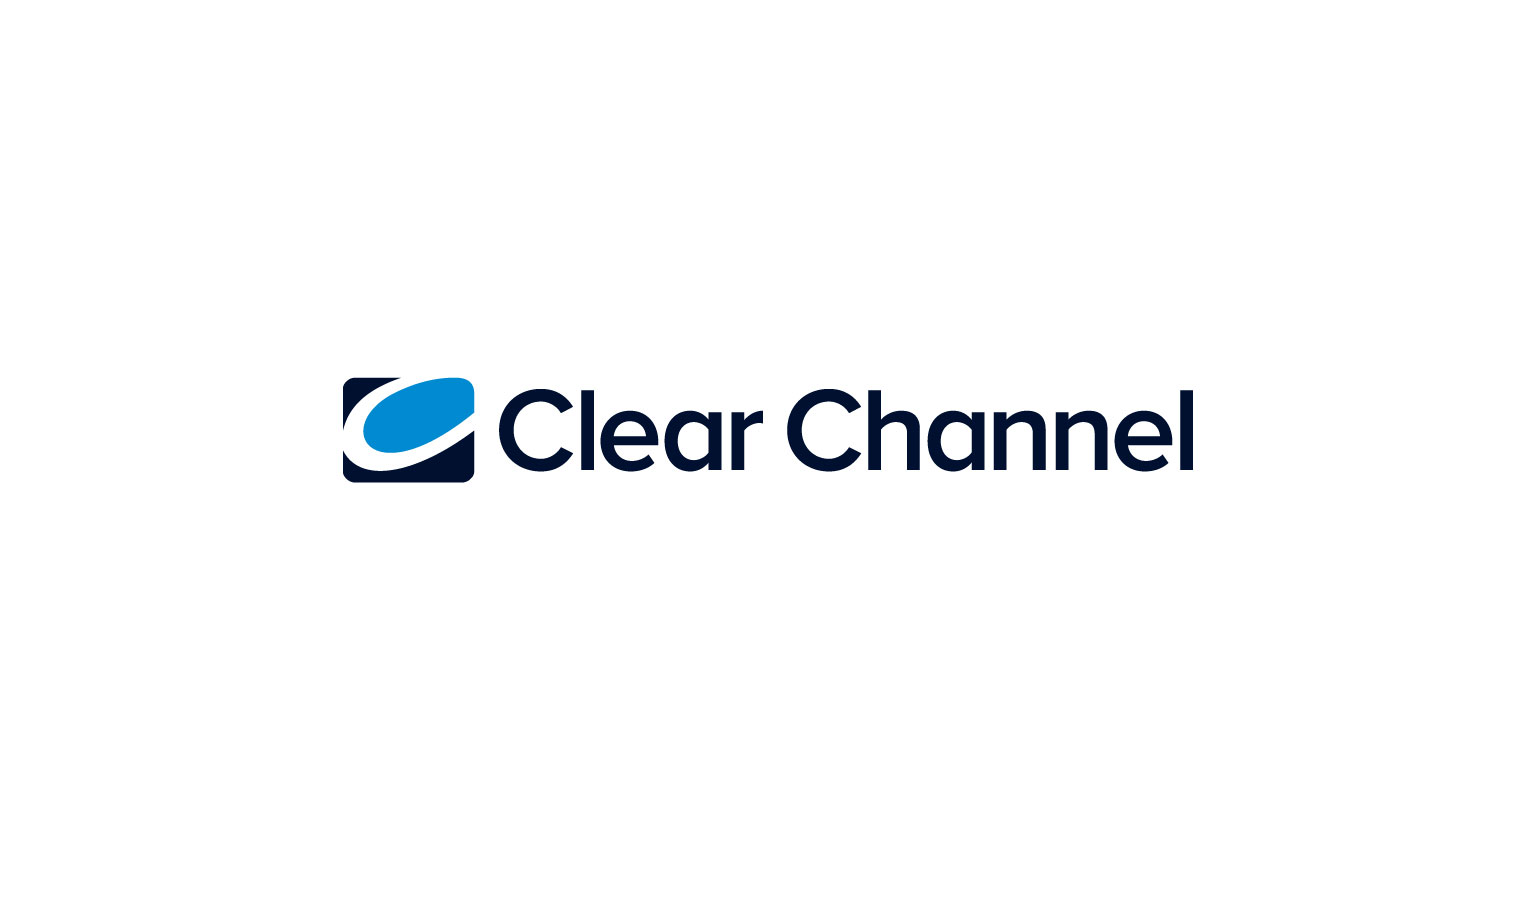 Logotype Clear Channel